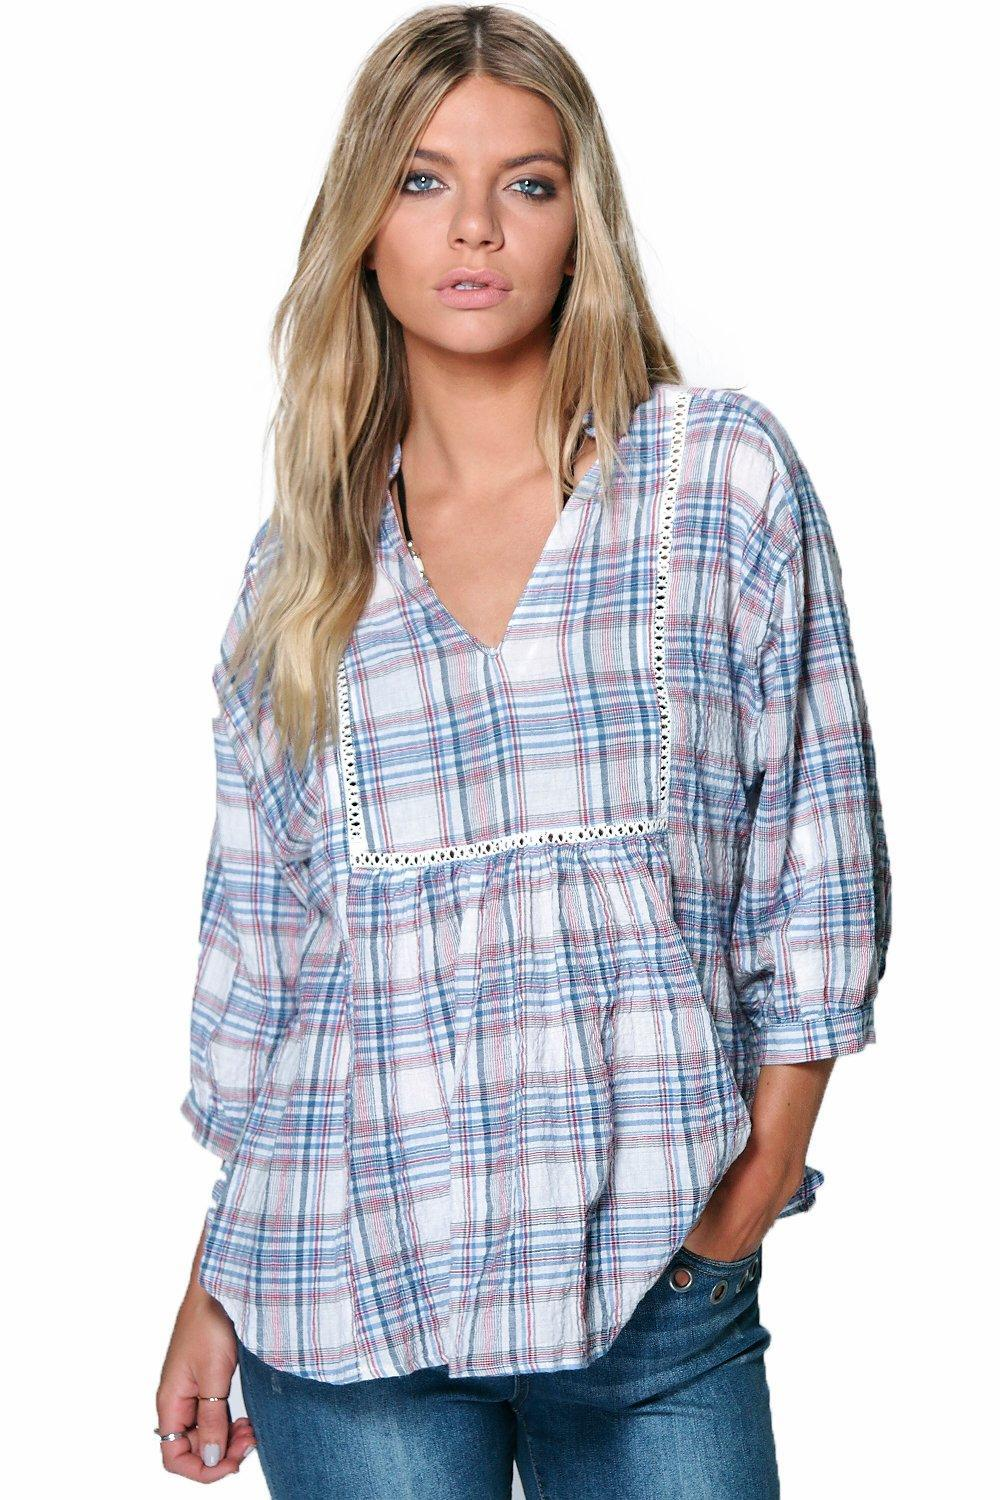 Crinkle Check Smock Shirt Multi - neckline: low v-neck; pattern: checked/gingham; length: below the bottom; style: shirt; waist detail: flattering waist detail; secondary colour: lilac; predominant colour: pale blue; occasions: casual; fibres: cotton - 100%; fit: loose; sleeve length: 3/4 length; sleeve style: standard; pattern type: fabric; texture group: other - light to midweight; pattern size: big & busy (top); season: s/s 2016; wardrobe: highlight